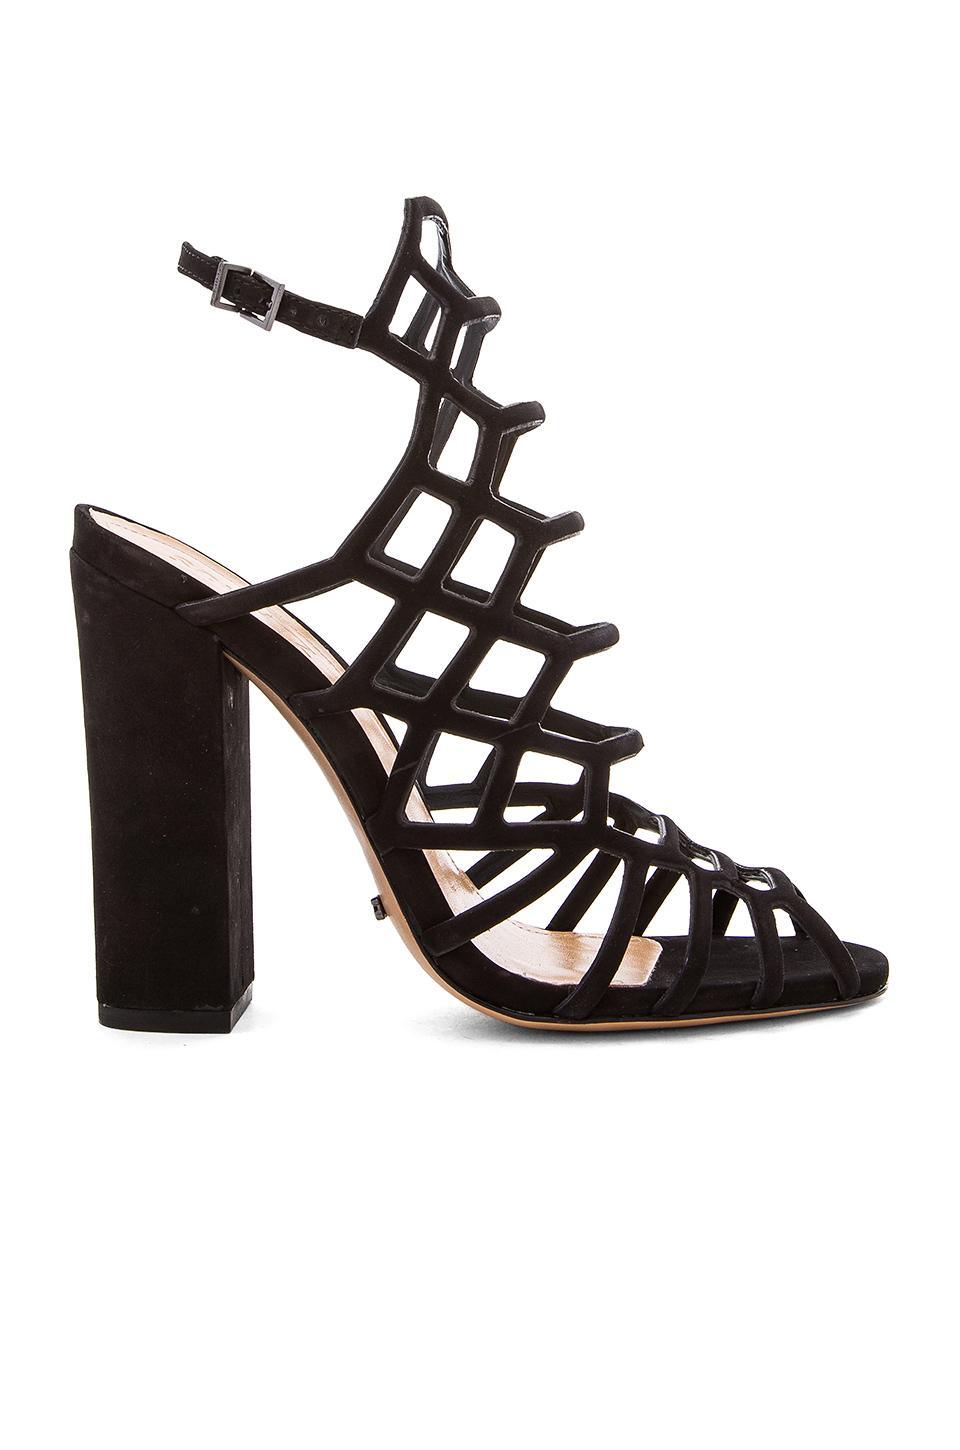 Schutz Jaden Caged Suede Block Heel Sandals In Black